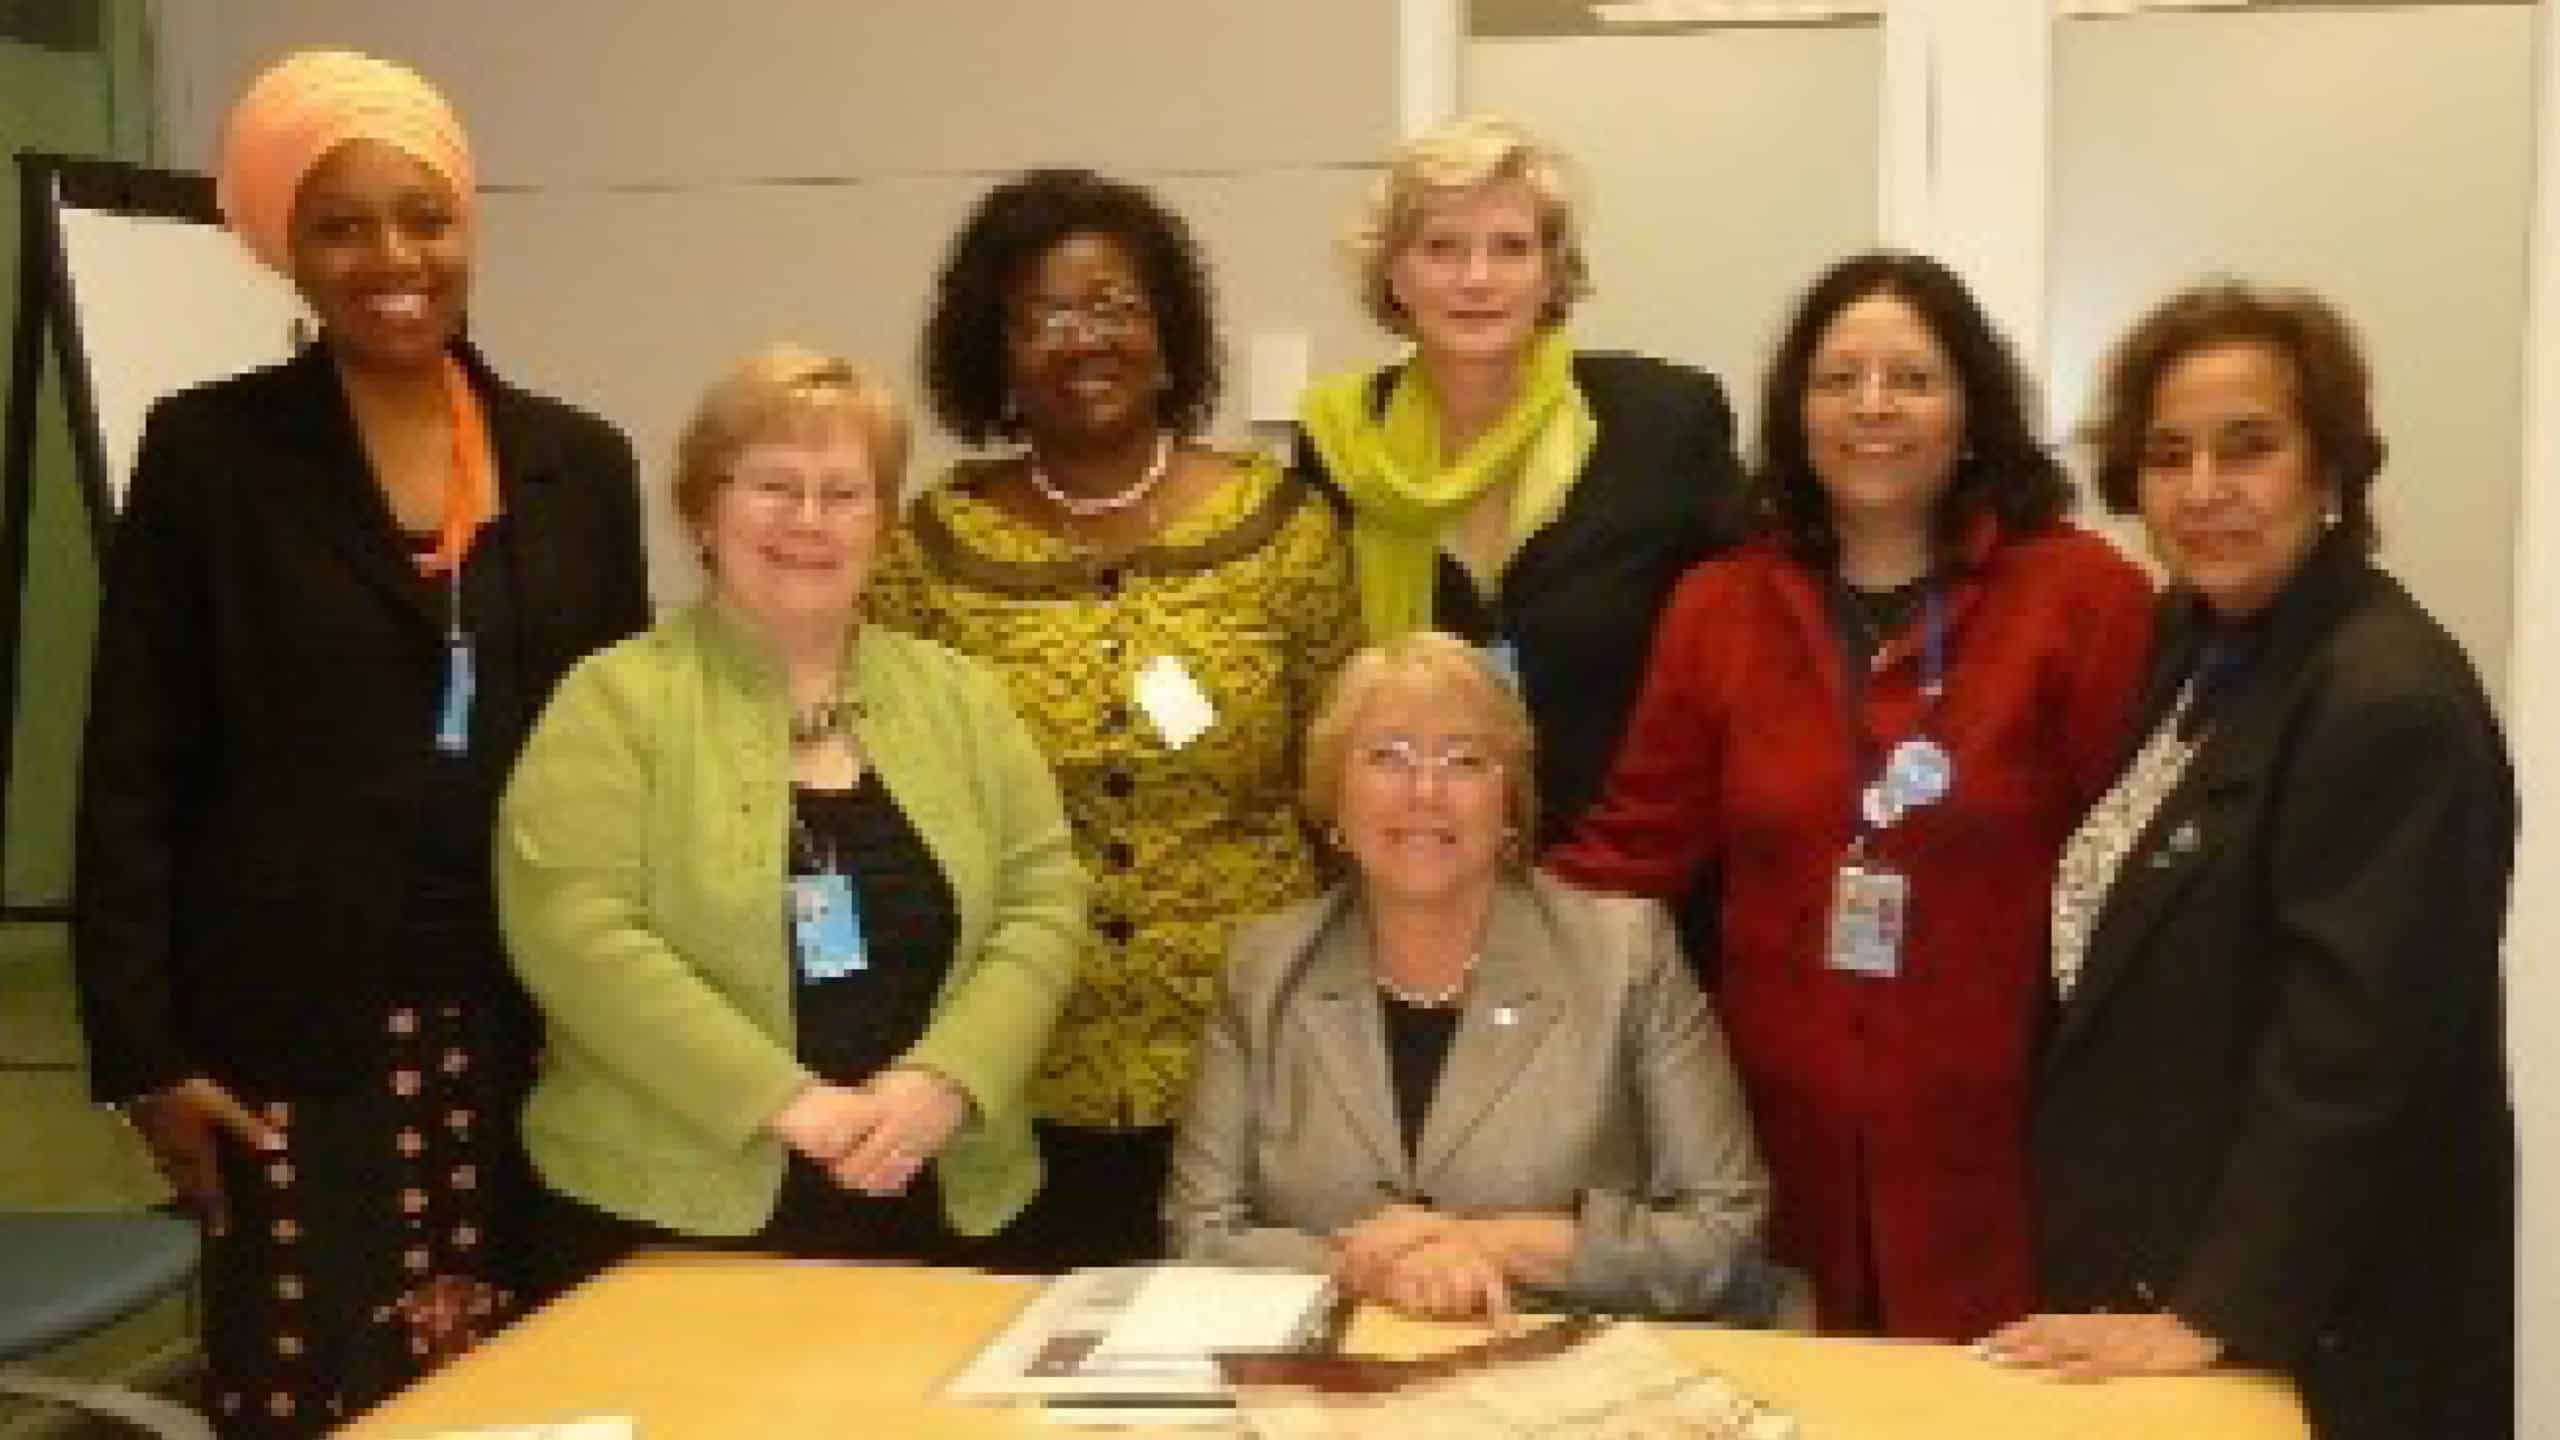 Eleanor Nwadinobi, Shelley Ross, Afua Hesse, Claudia Morrissey, Padmini Murthy and Satty Keswani with Michelle Bachelet, Former President of Chile